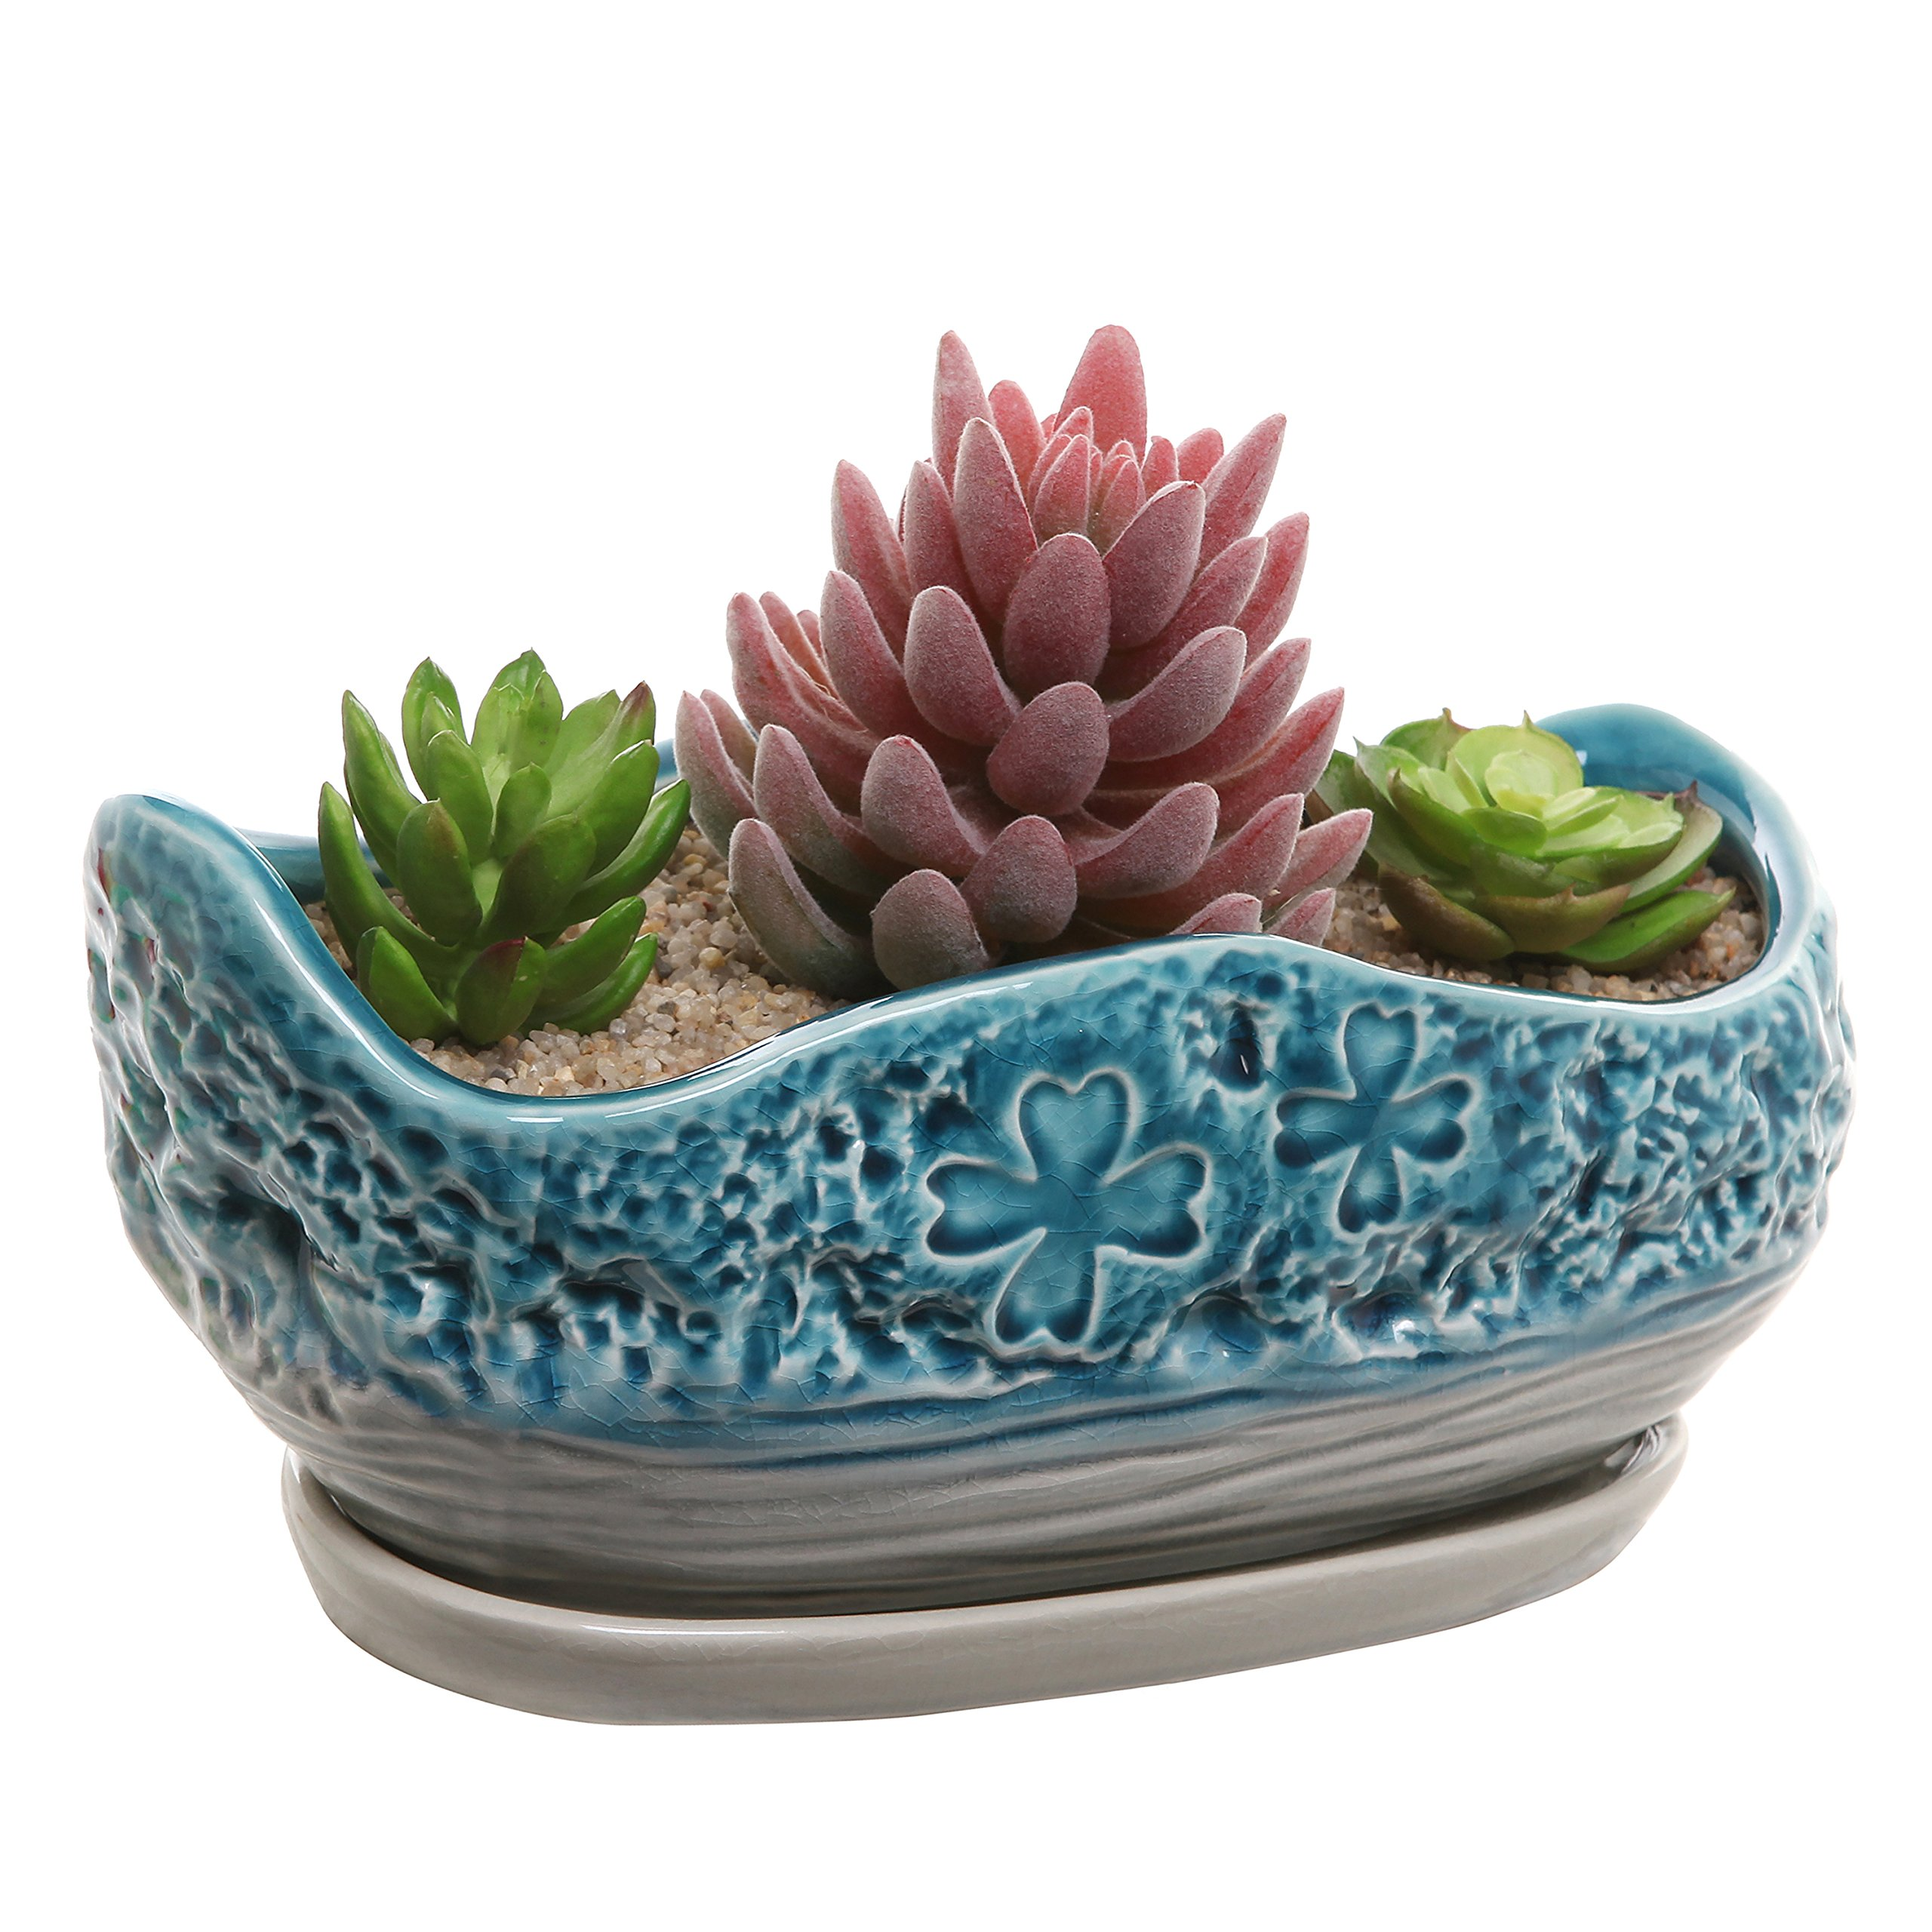 Turquoise & Gray Clover Design Ceramic Flower Plant Pot / Decorative Centerpiece Planter with Saucer by MyGift